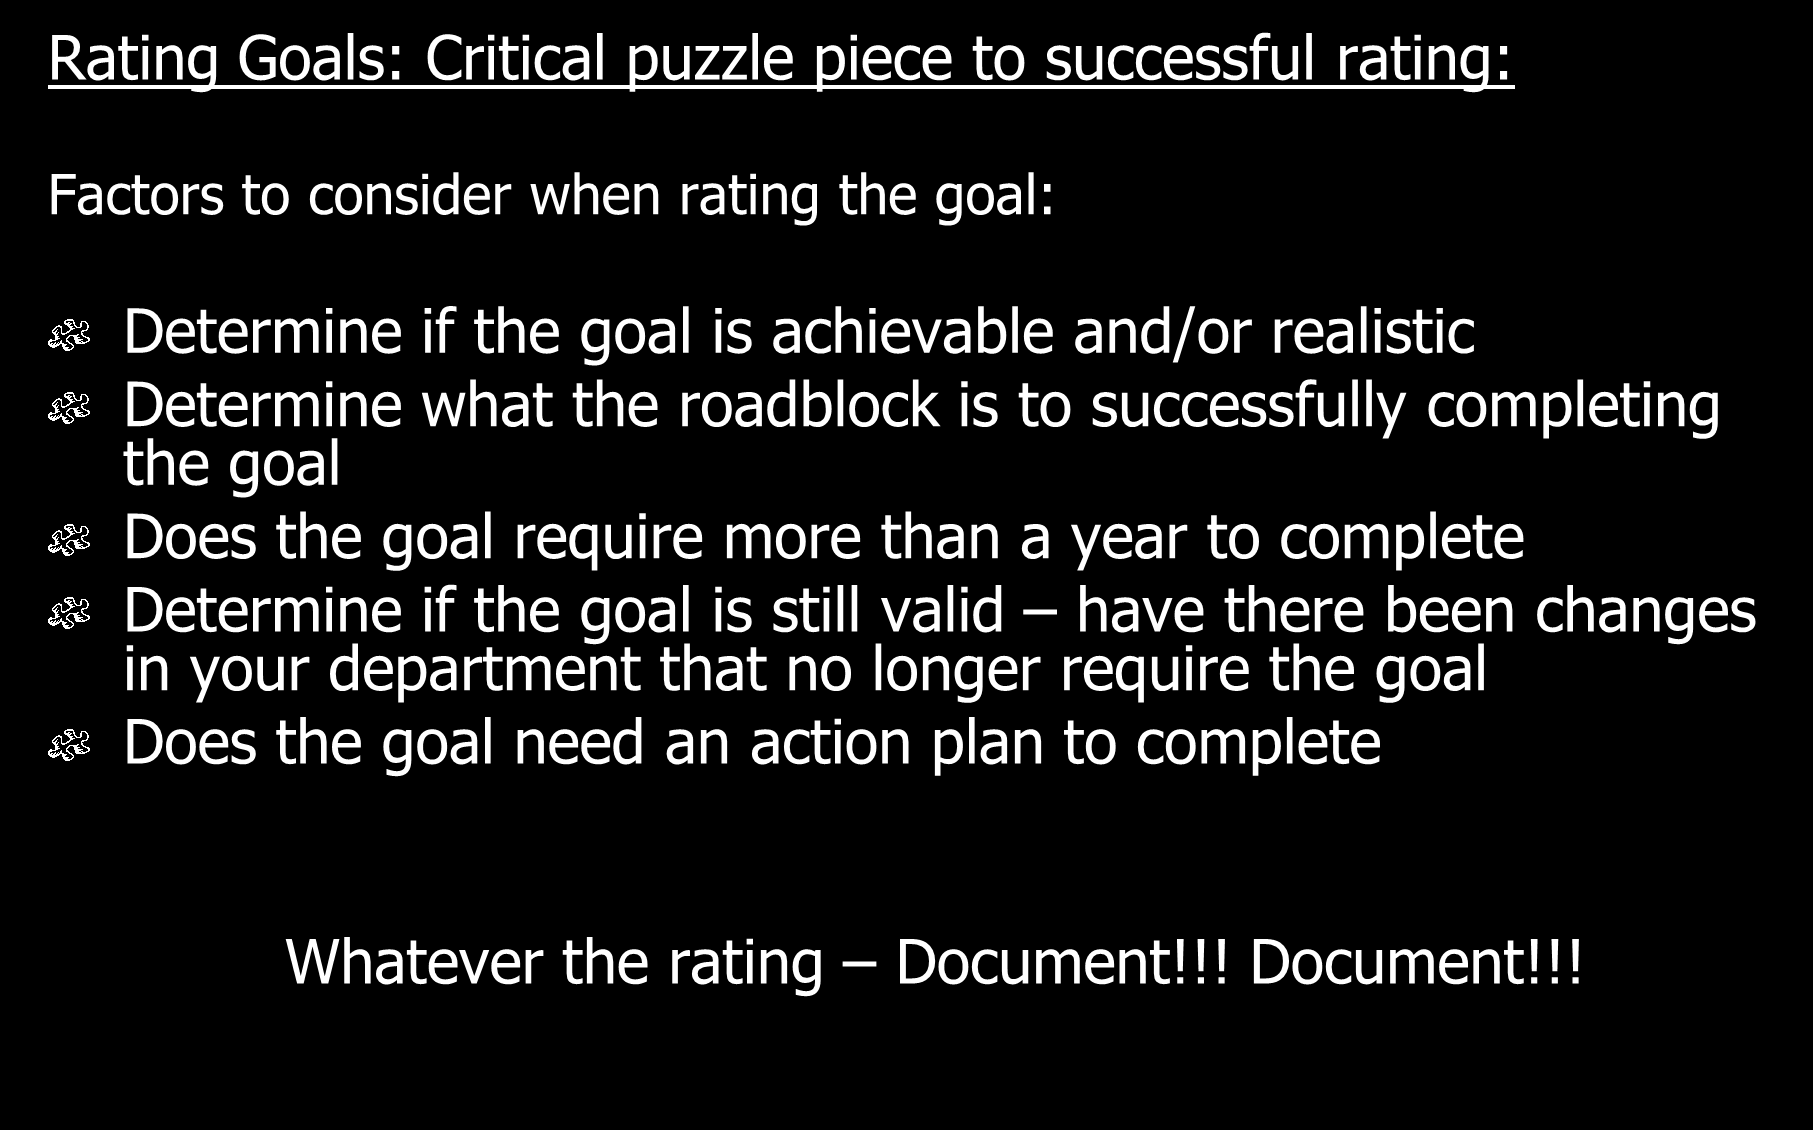 Rating Goals: Critical puzzle piece to successful rating: Factors to consider when rating the goal: Determine if the goal is achievable and/or realistic Determine what the roadblock is to